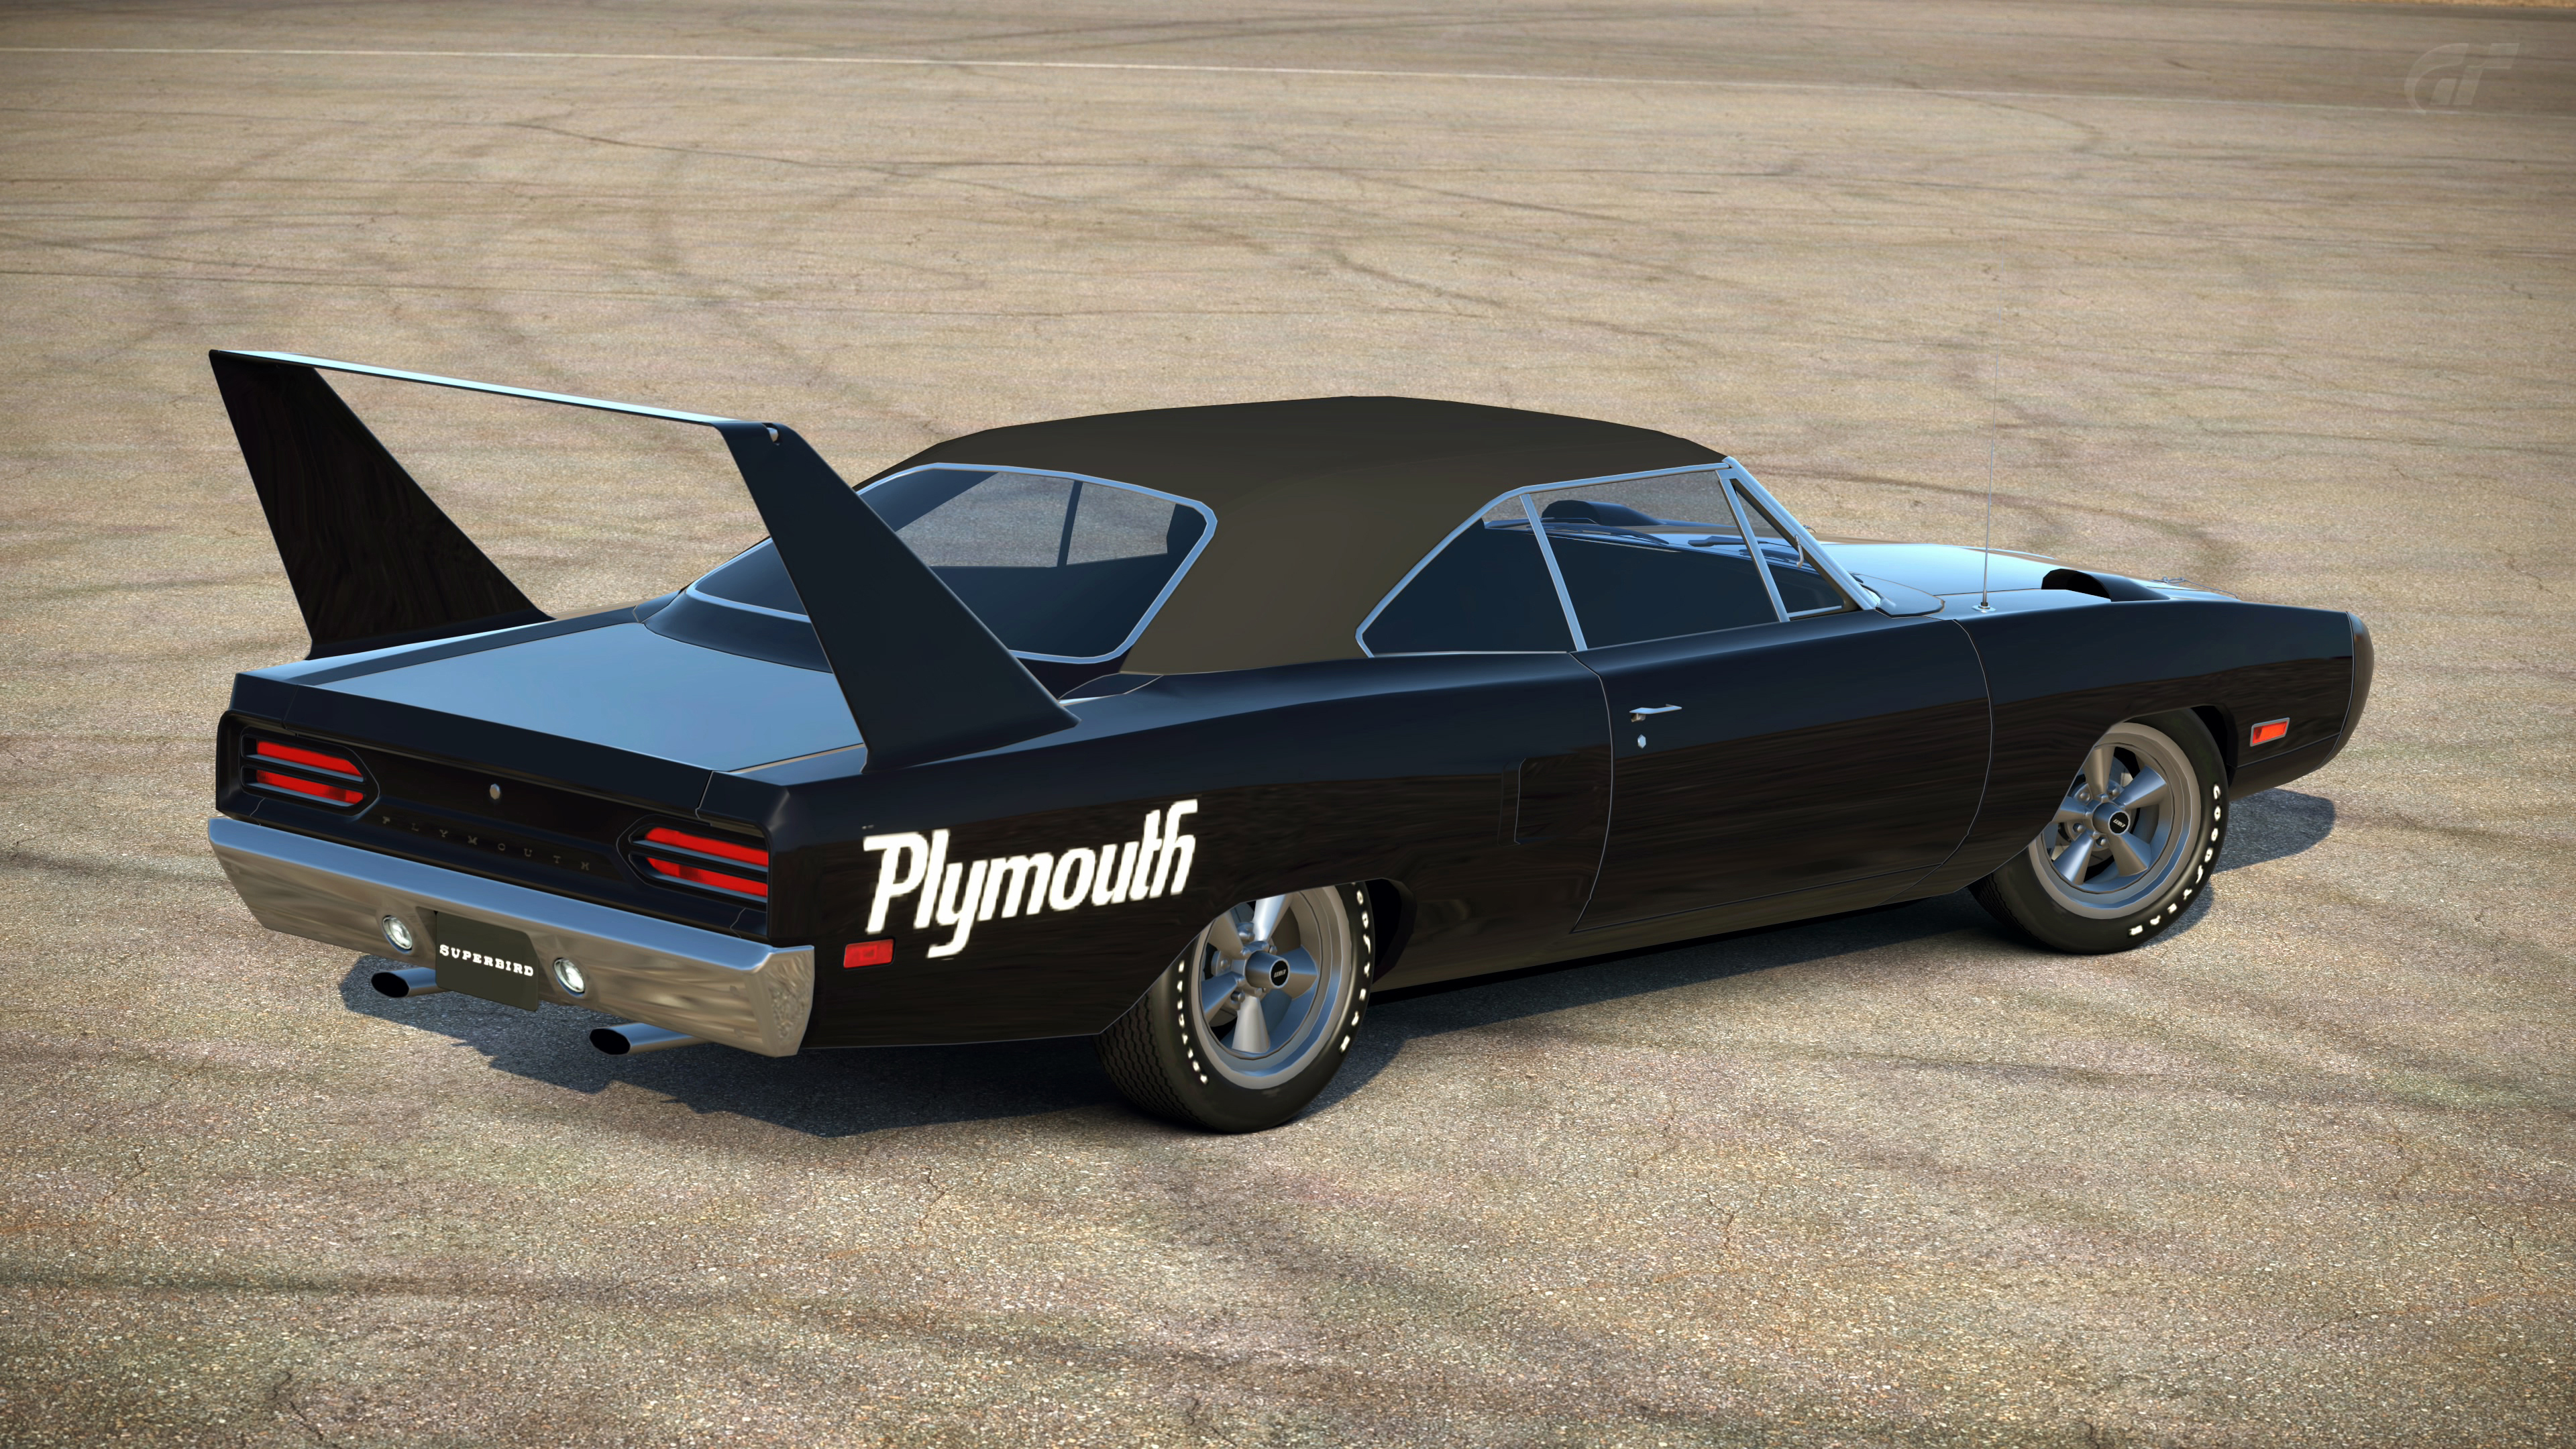 PLYMOUTH SUPERBIRD, THE RAREST MUSCLE CAR IN THE WORLD - Image #12